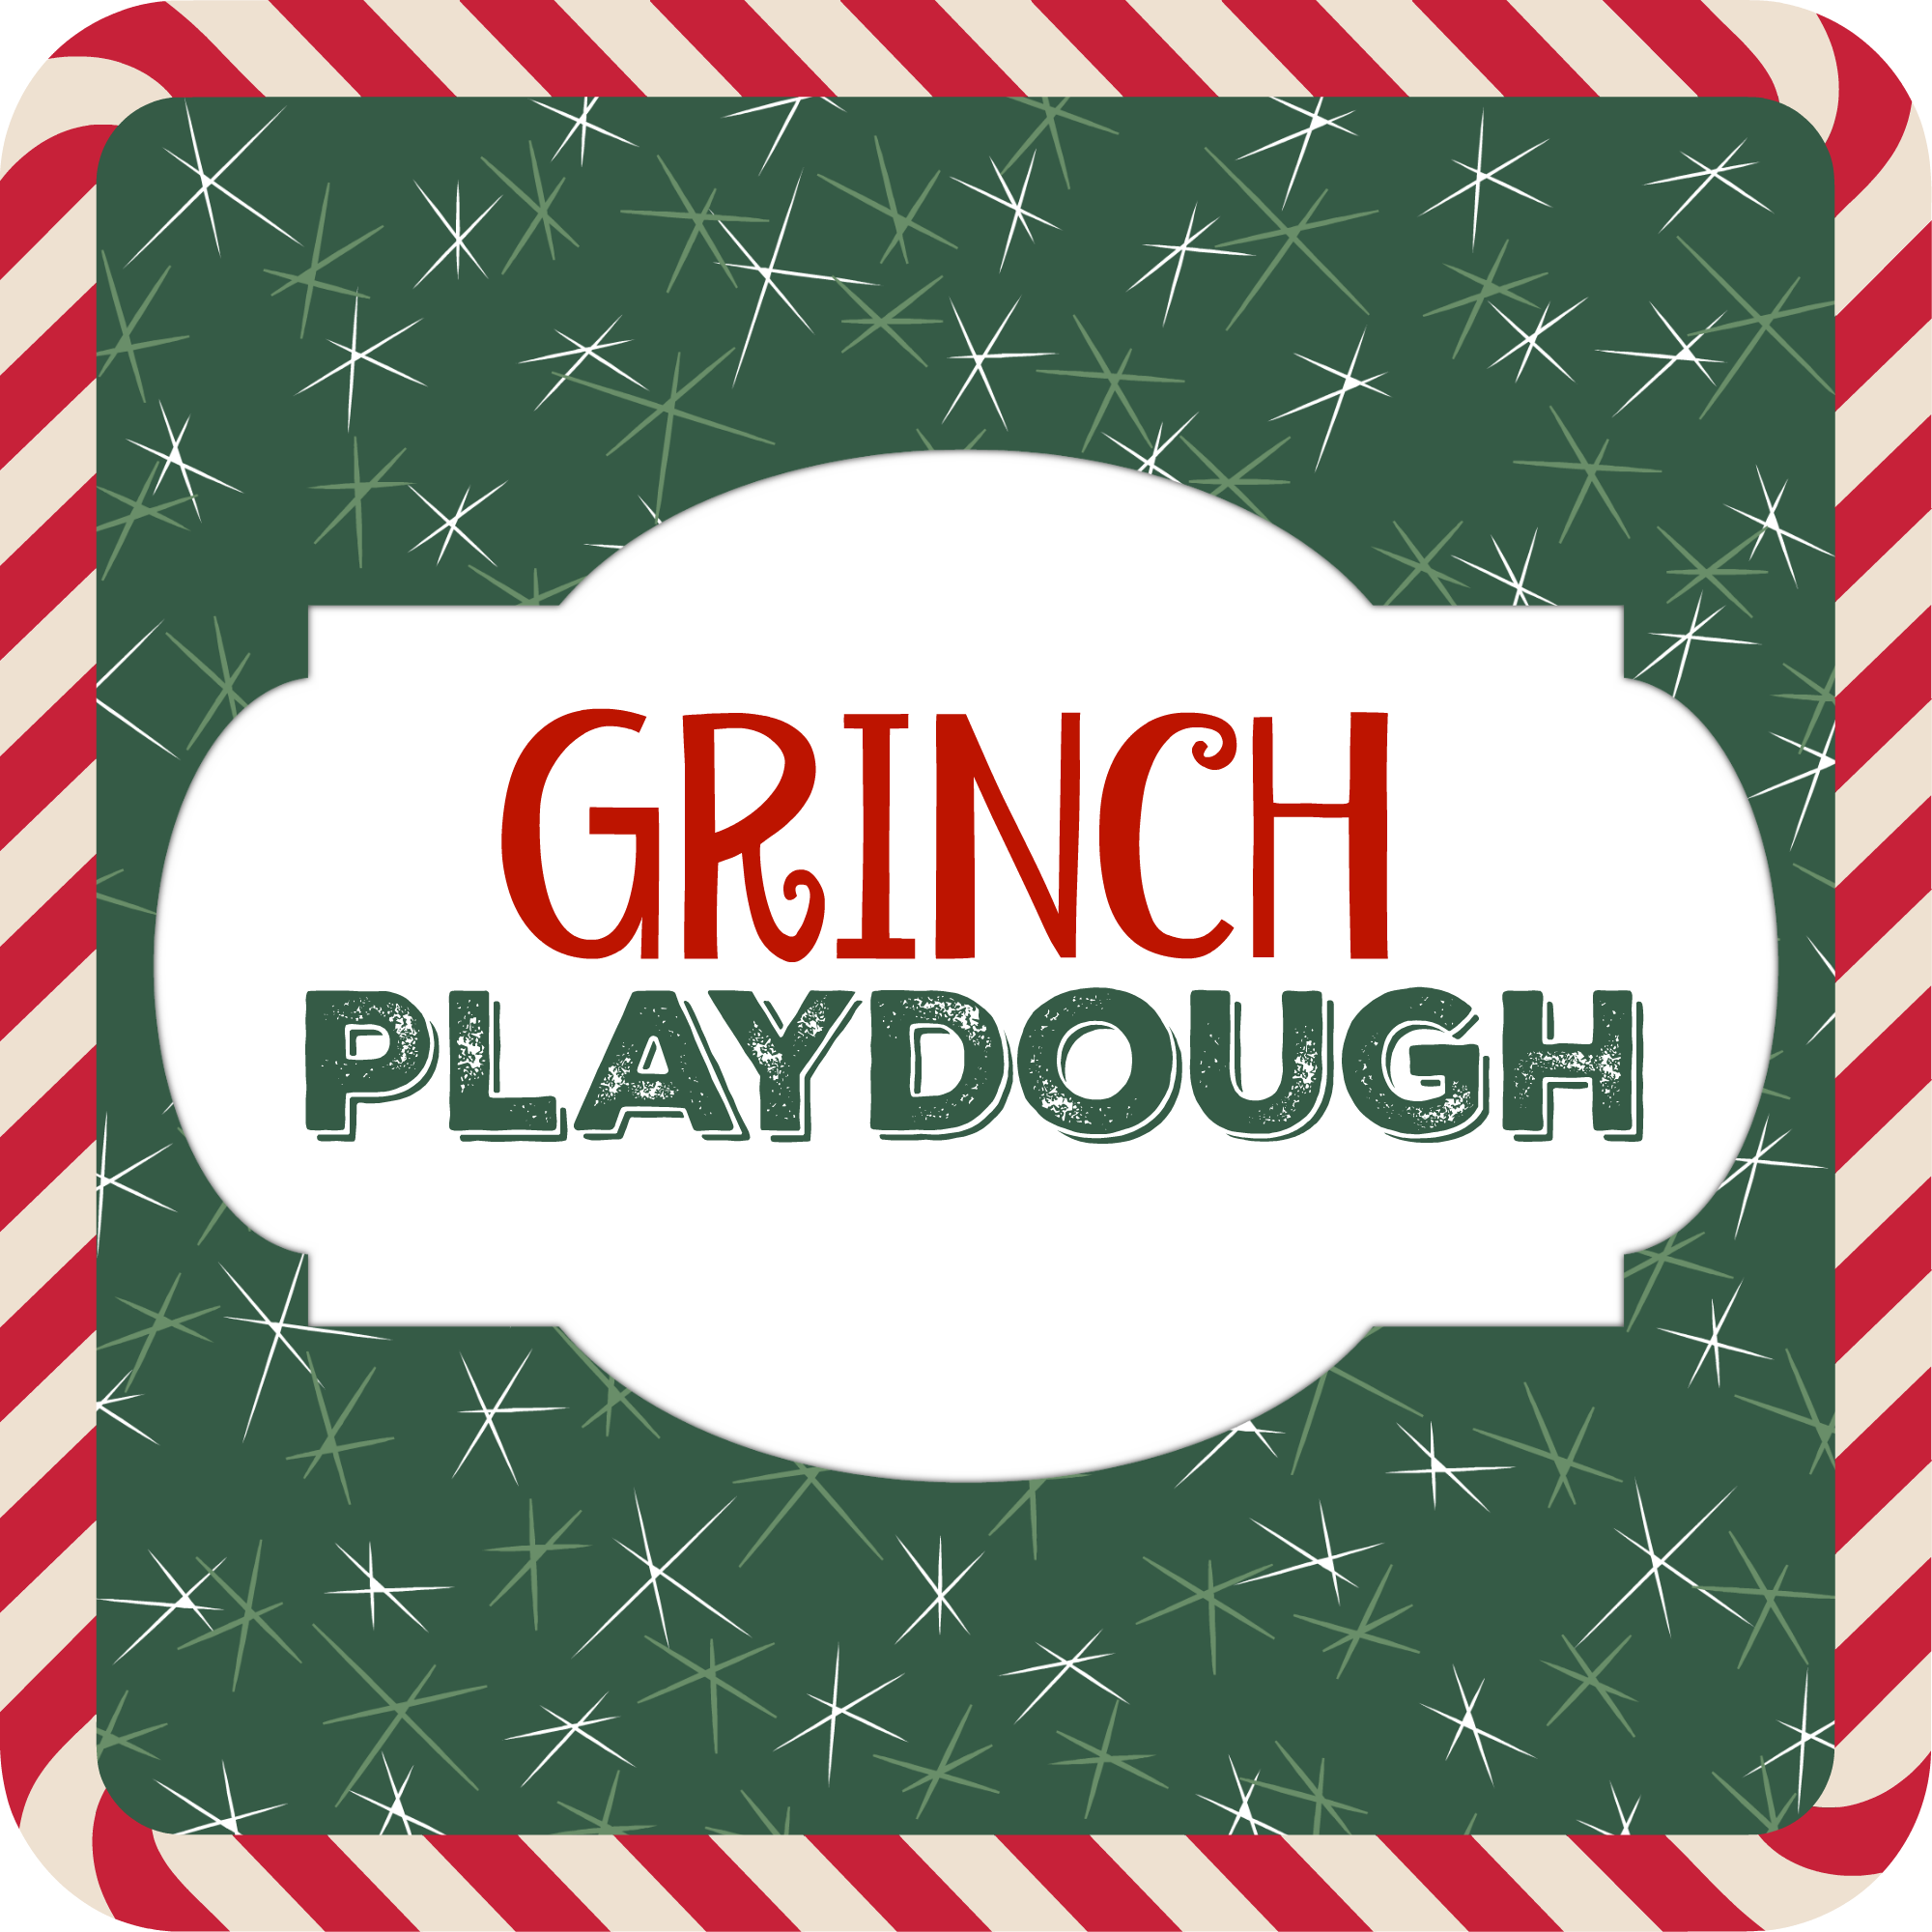 Grinch Playdough